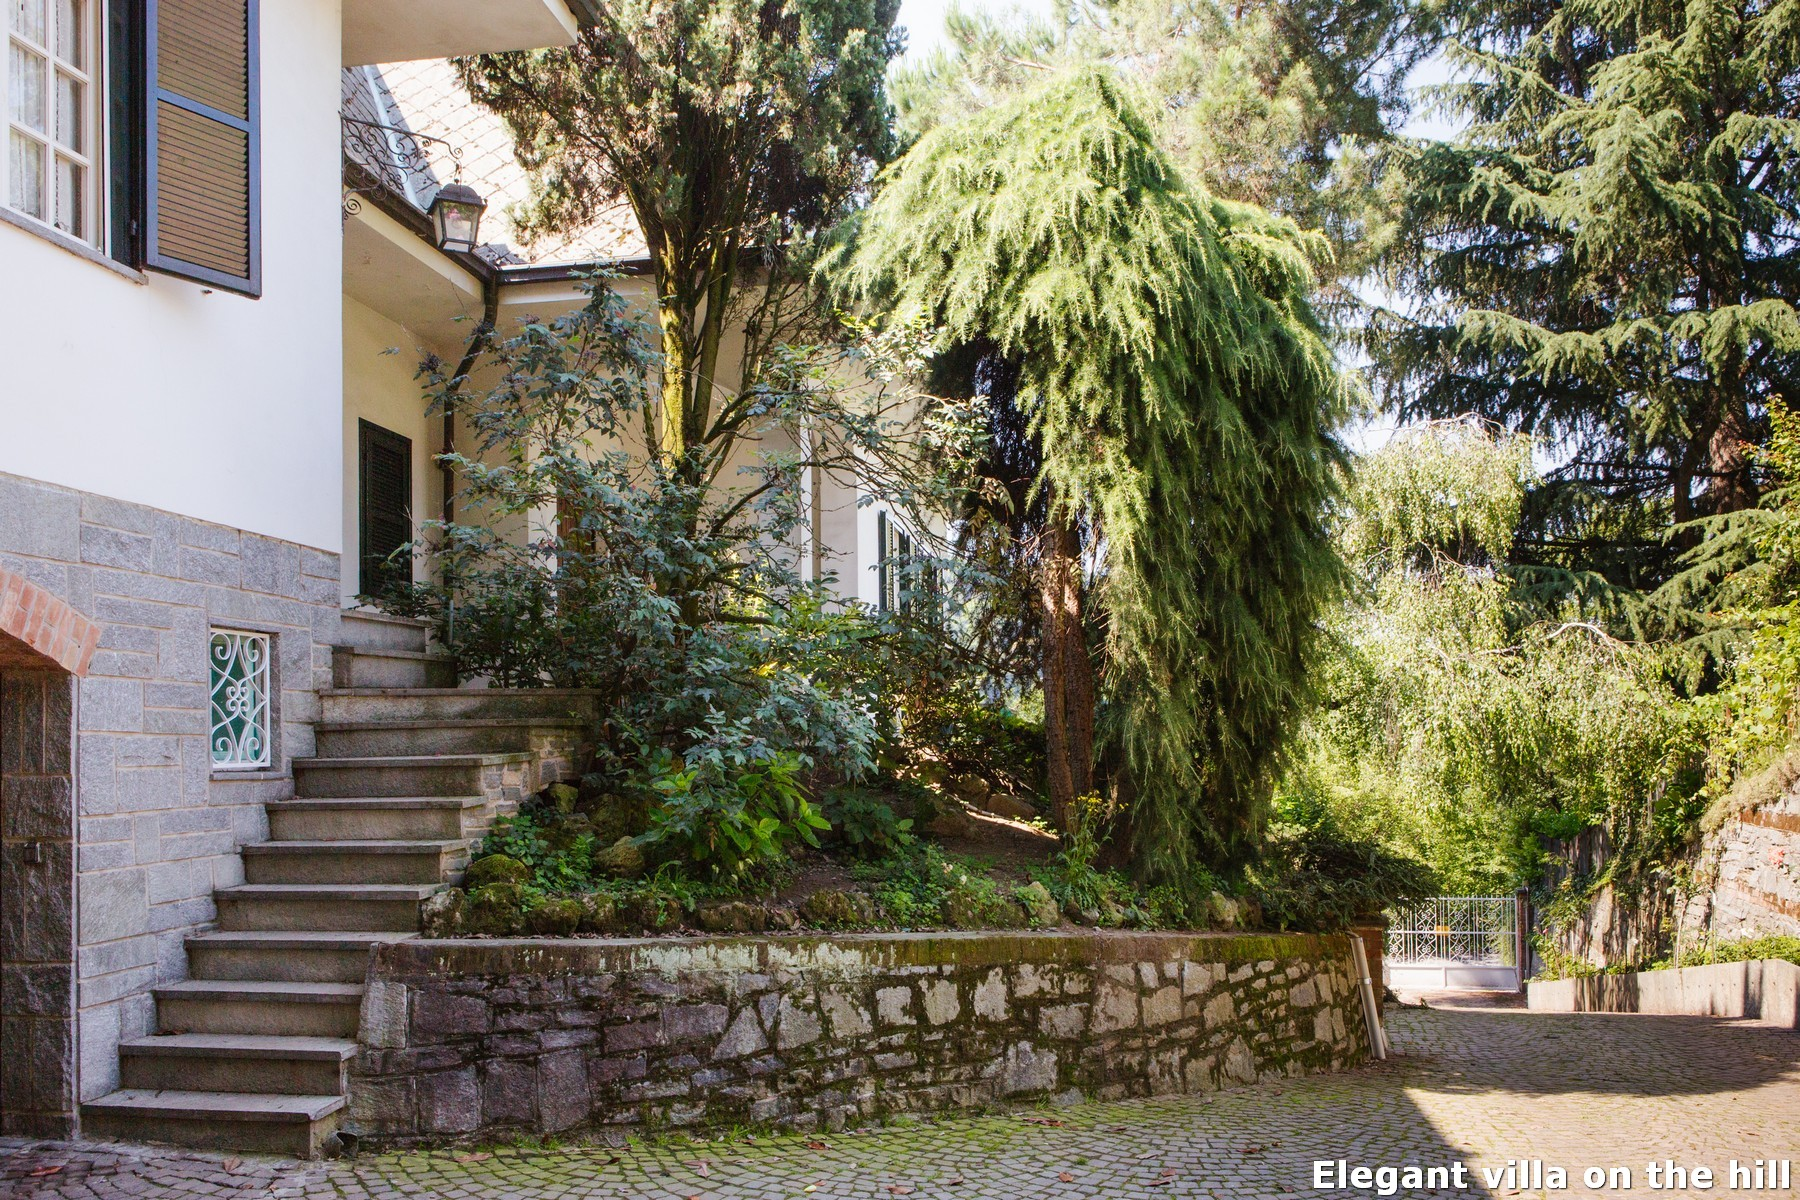 Additional photo for property listing at Elegant villa on the hill Viale XXV Aprile Torino, Turin 10133 Italy